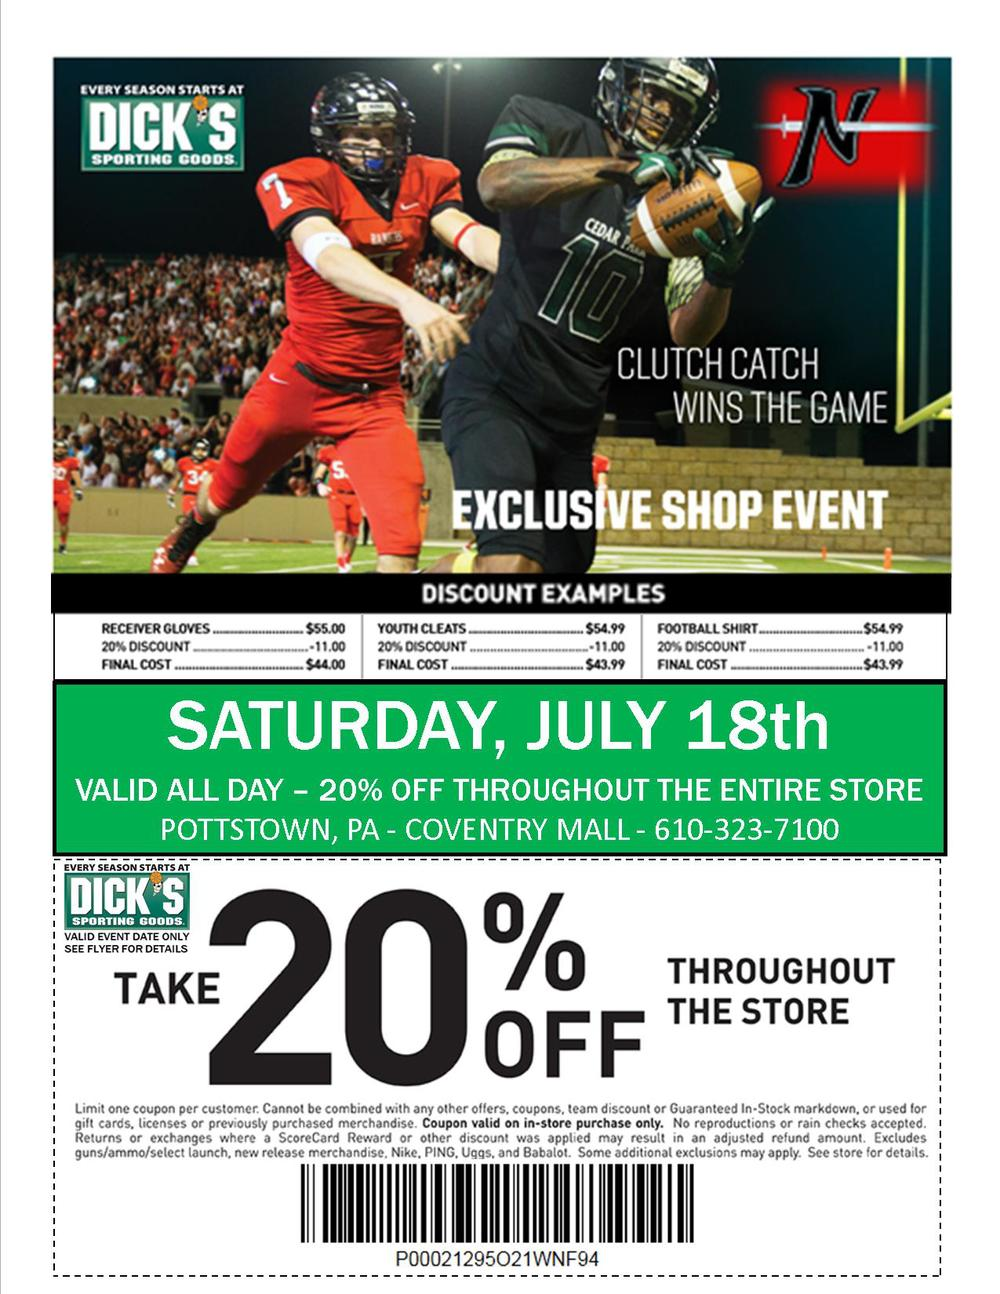 Norchester Red Knights are celebrating Youth Football & Cheer Appreciation Day at Dick's Sporting Goods at the Coventry Mall on Saturday, July 18, 2015!